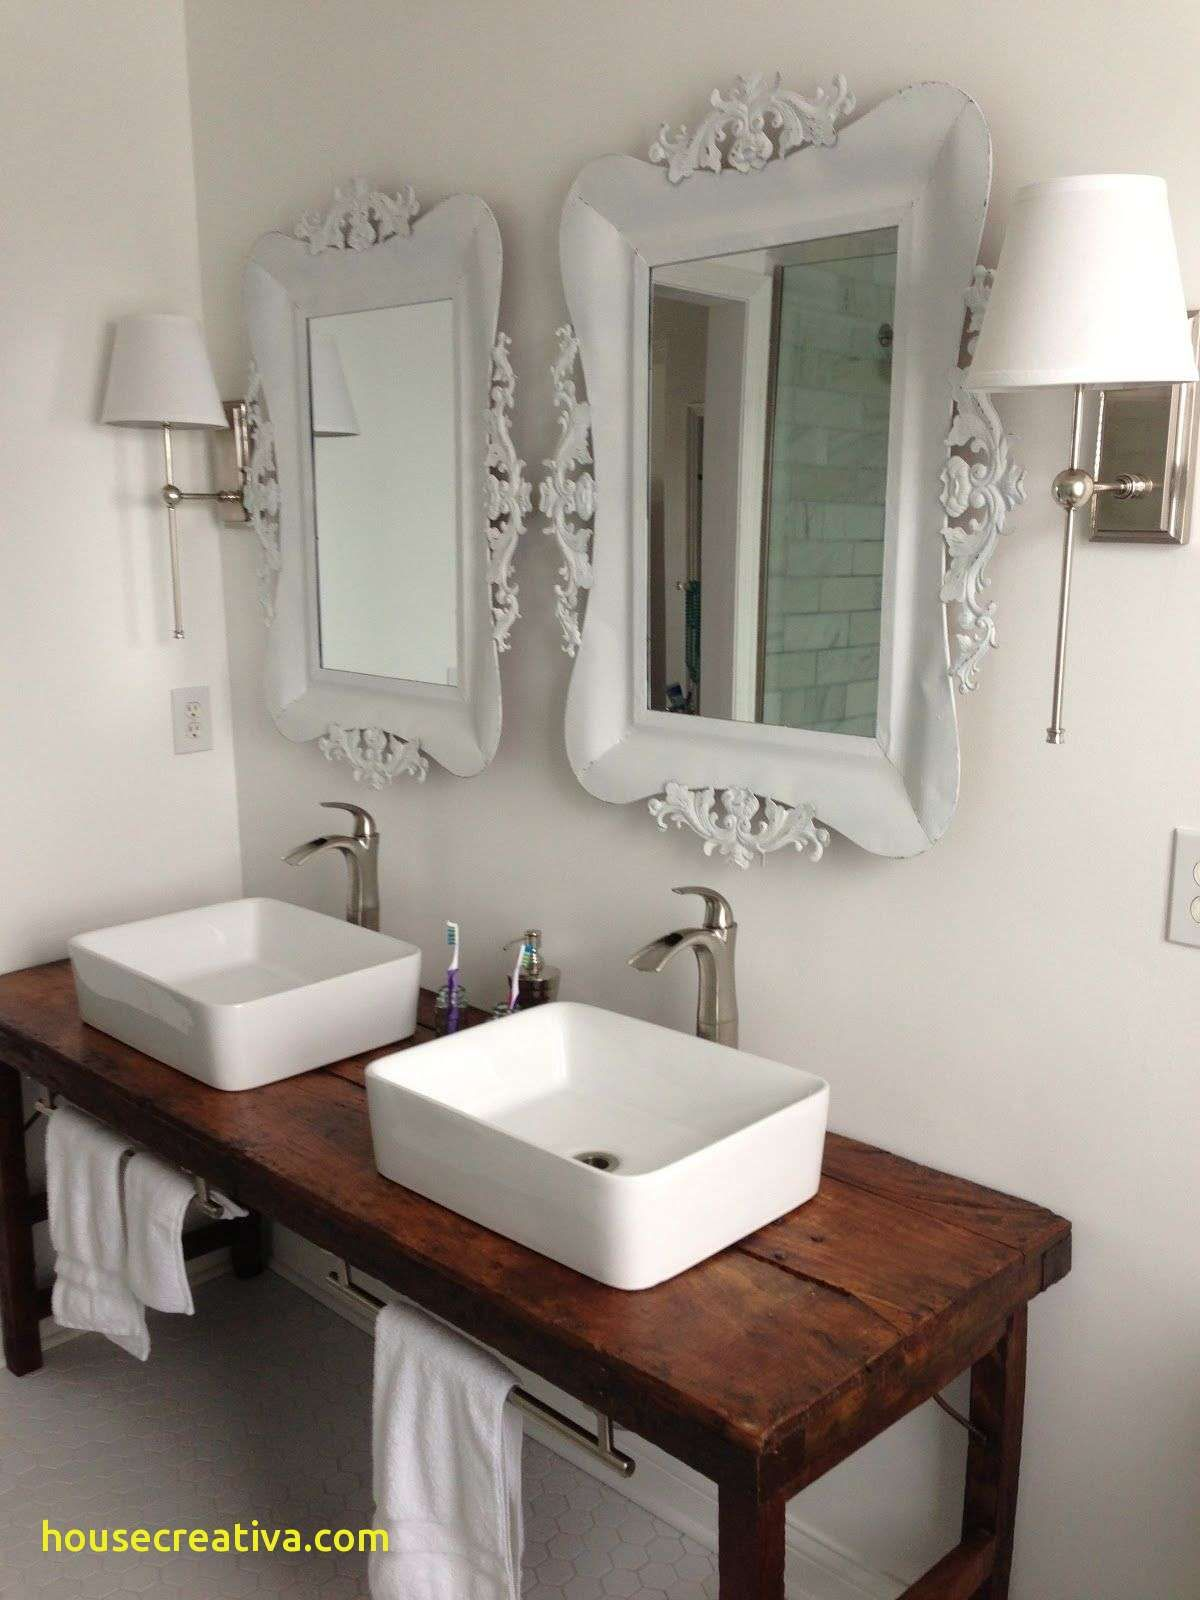 Best Of 50 Inch Double Sink Vanity Homedecoration